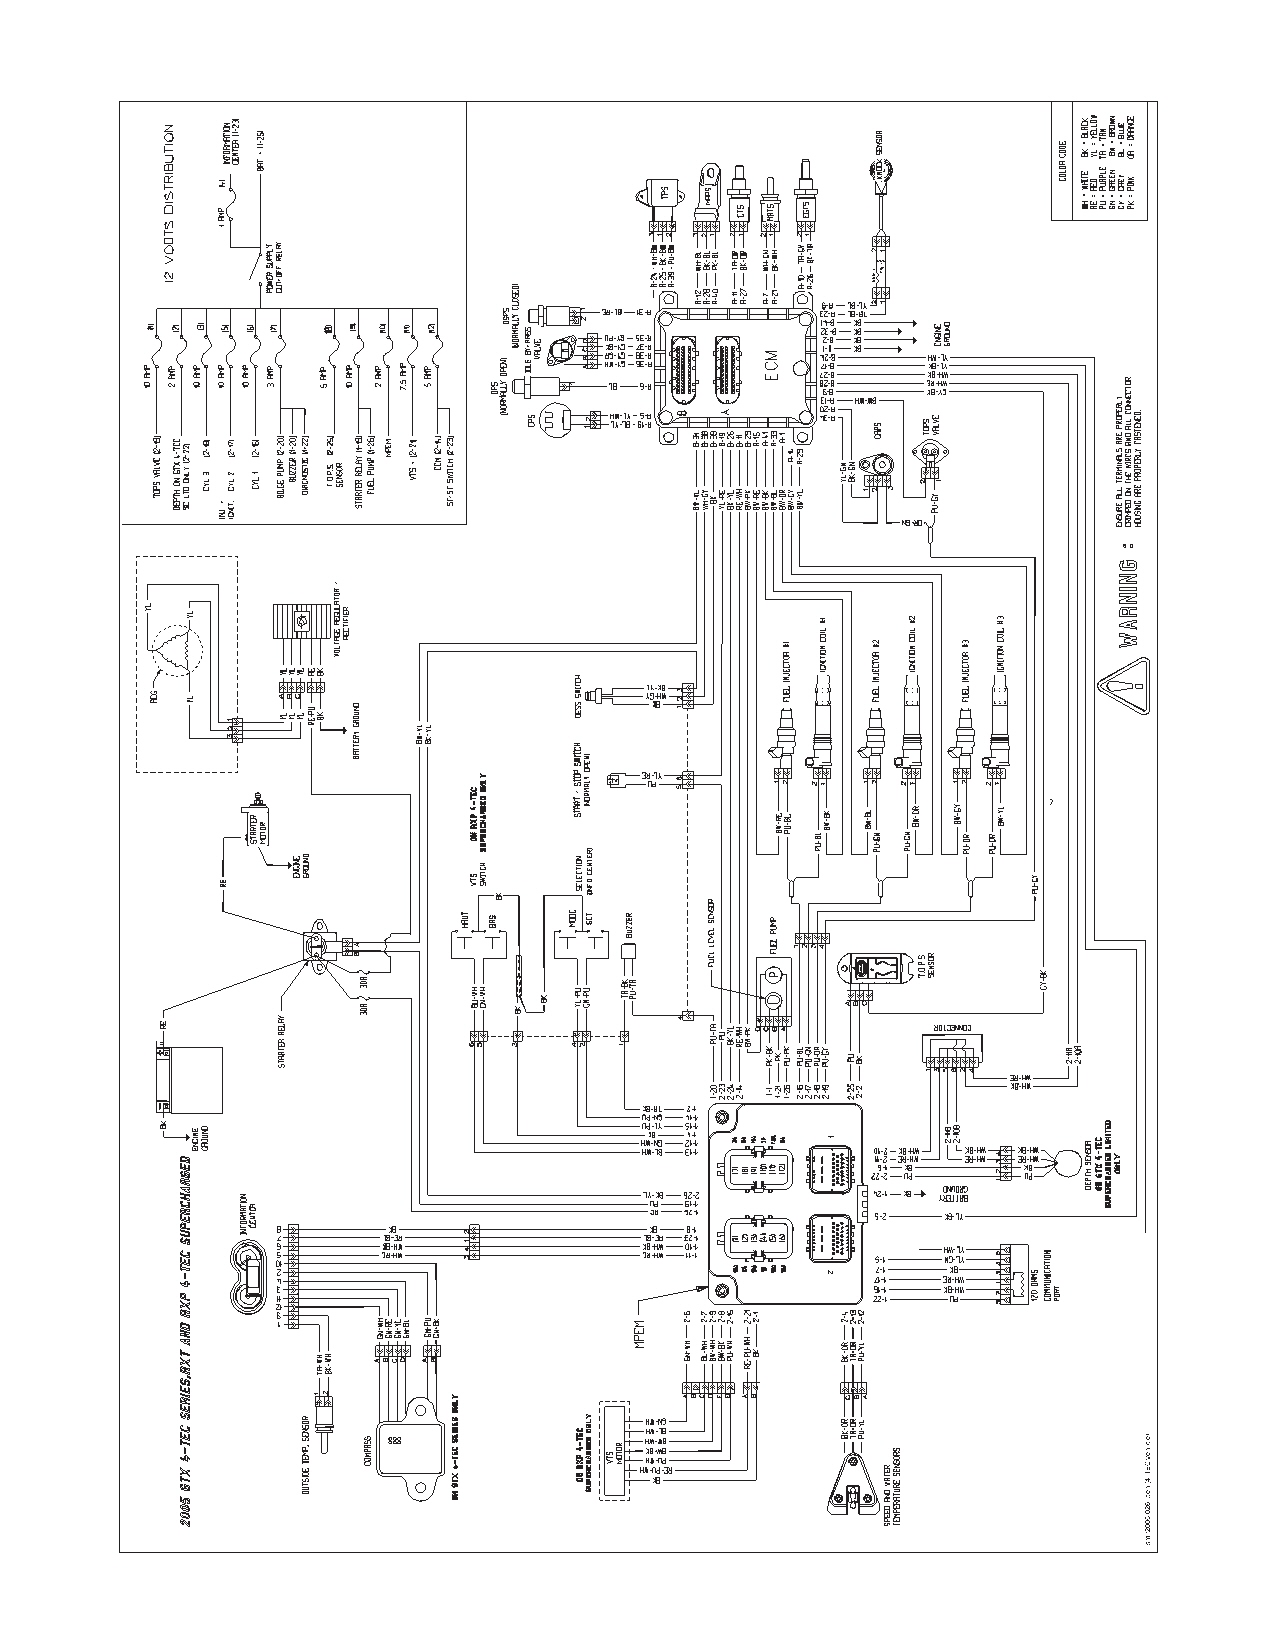 Awesome 1997 Tx 175 Enduro Wiring Diagram Ideas - Electrical and ...